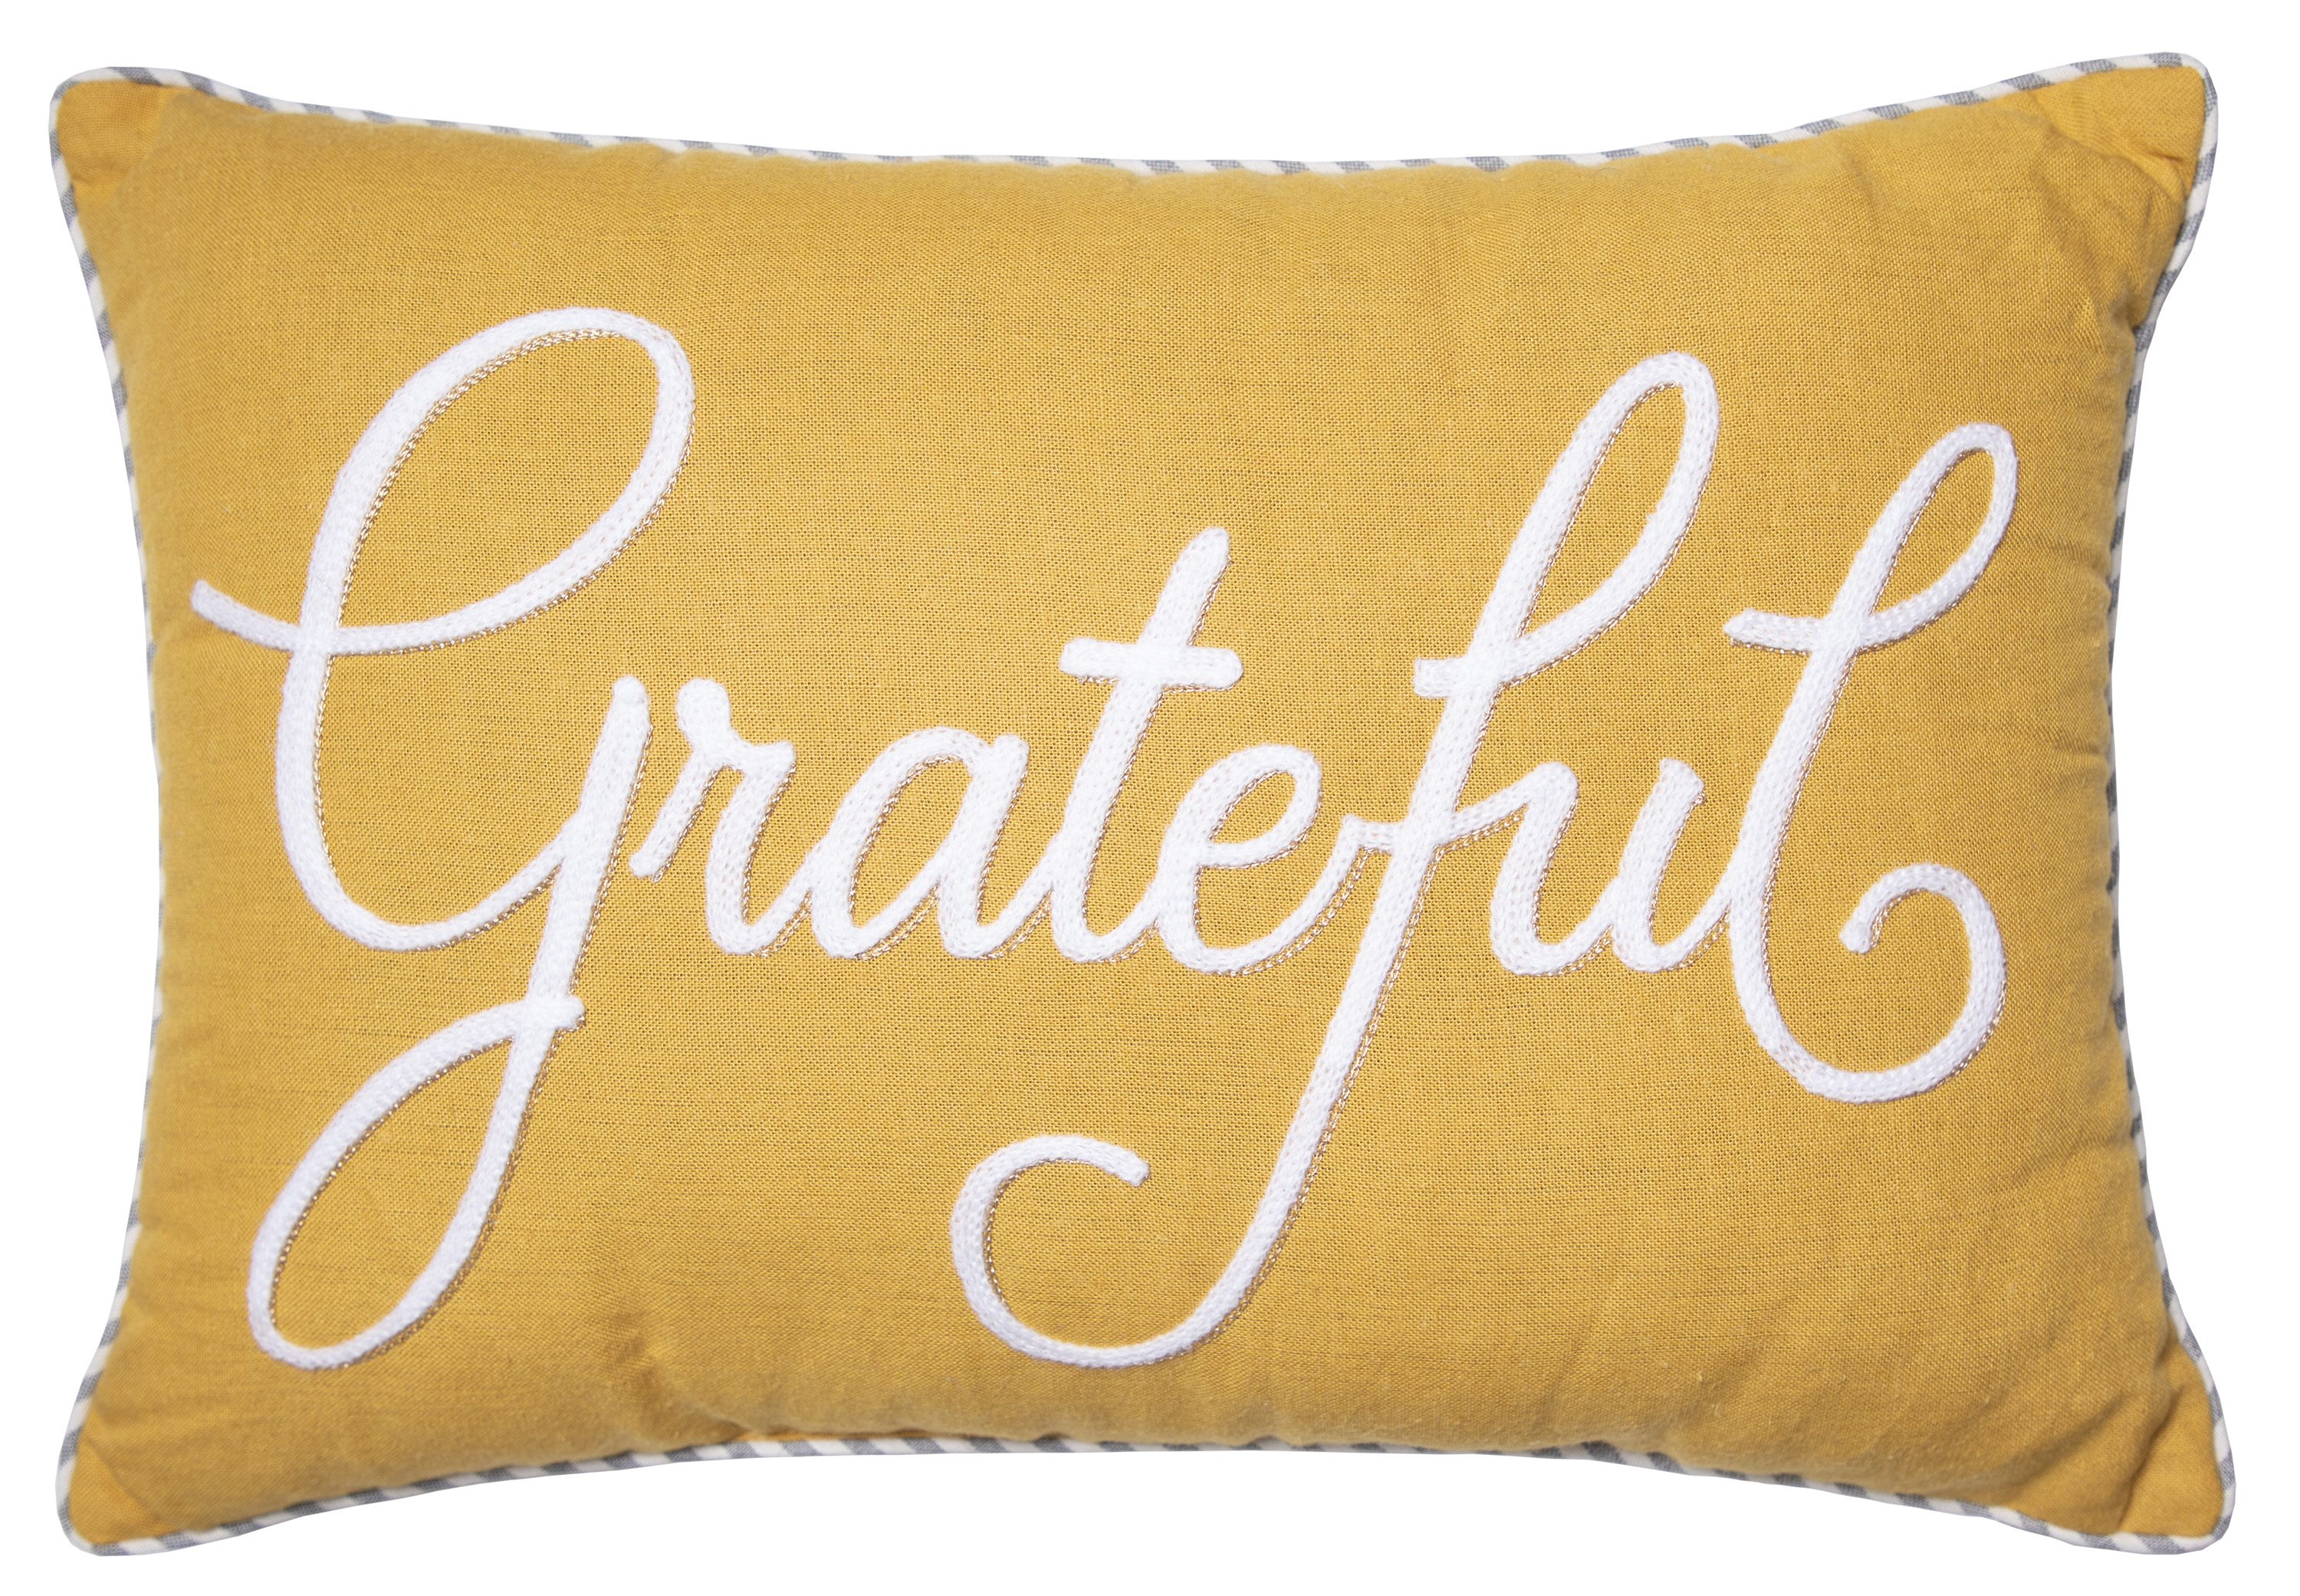 "Mainstays Harvest Words Oblong Decorative Throw Pillow, 14"" x 20"", Yellow"